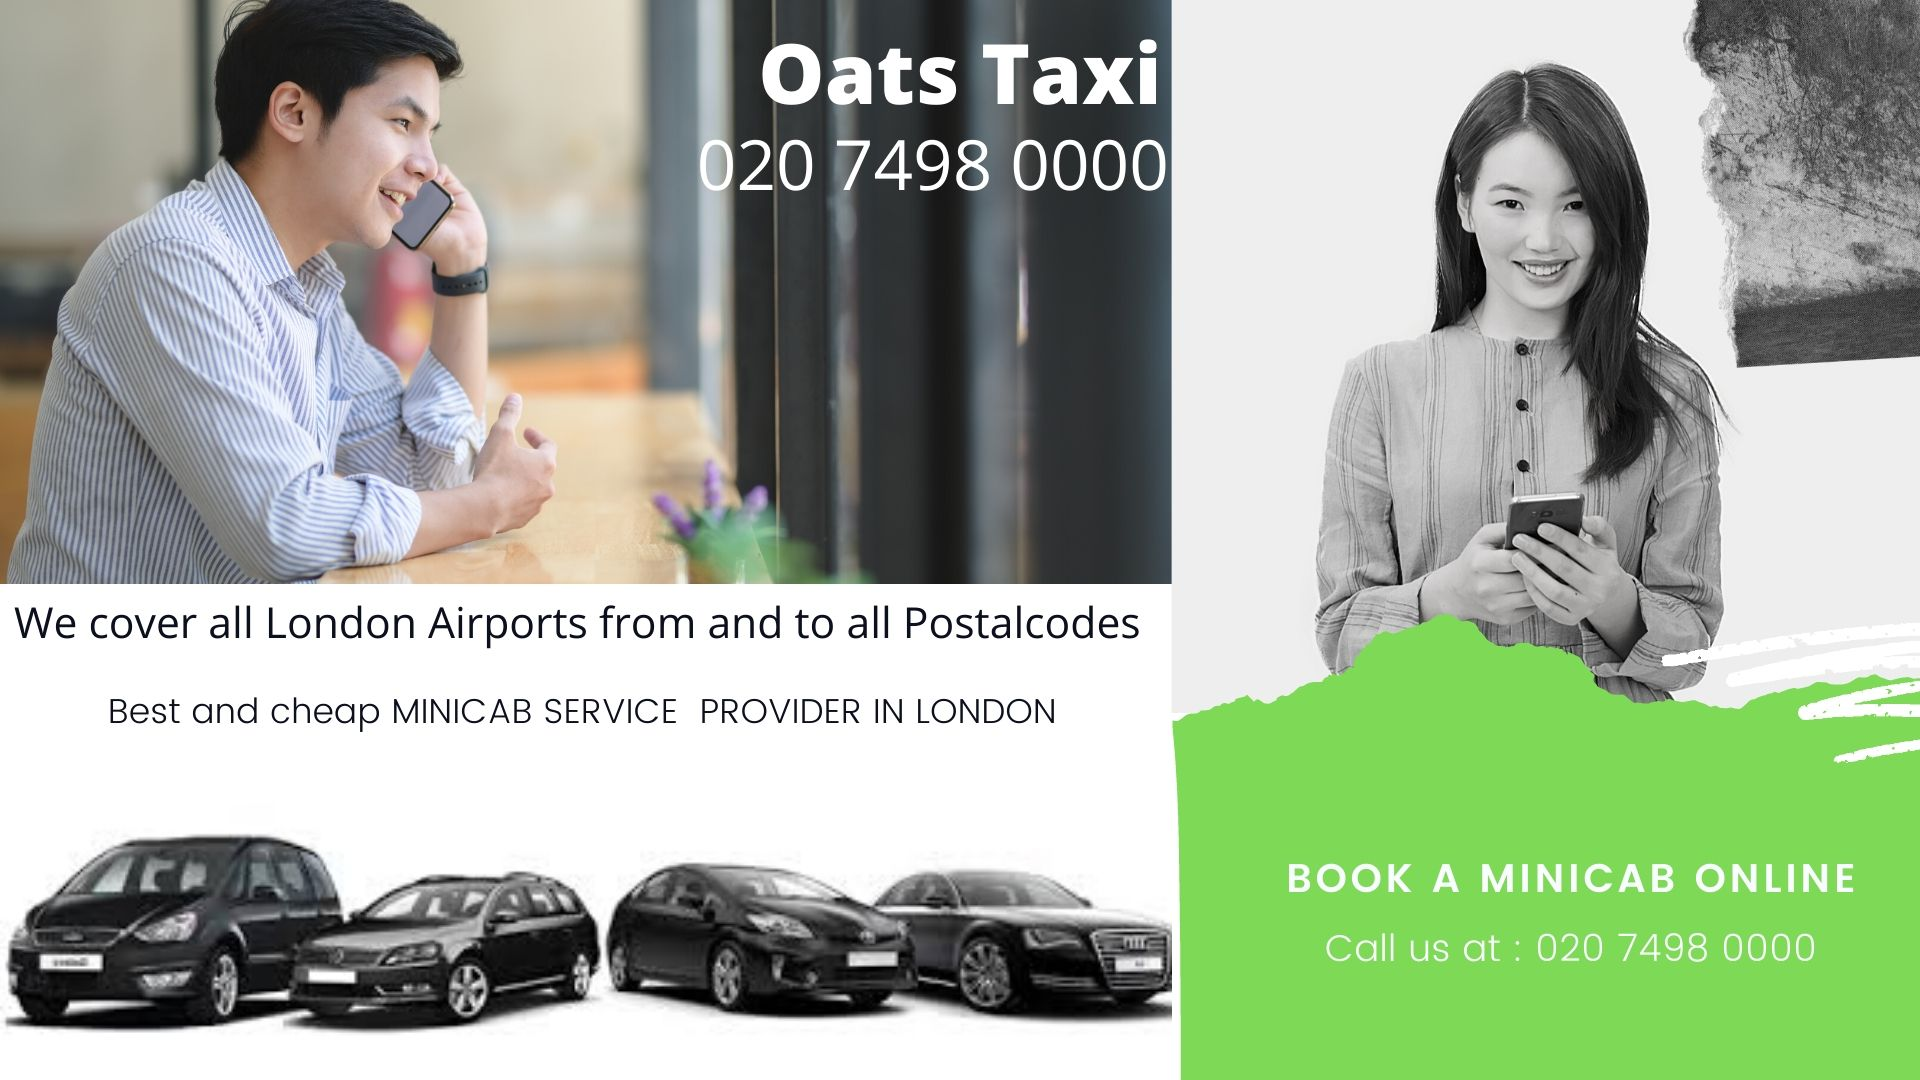 Minicab Office Near URSULA STREET, Battersea SW11, Minicab From Battersea SW11 To Gatwick Airport